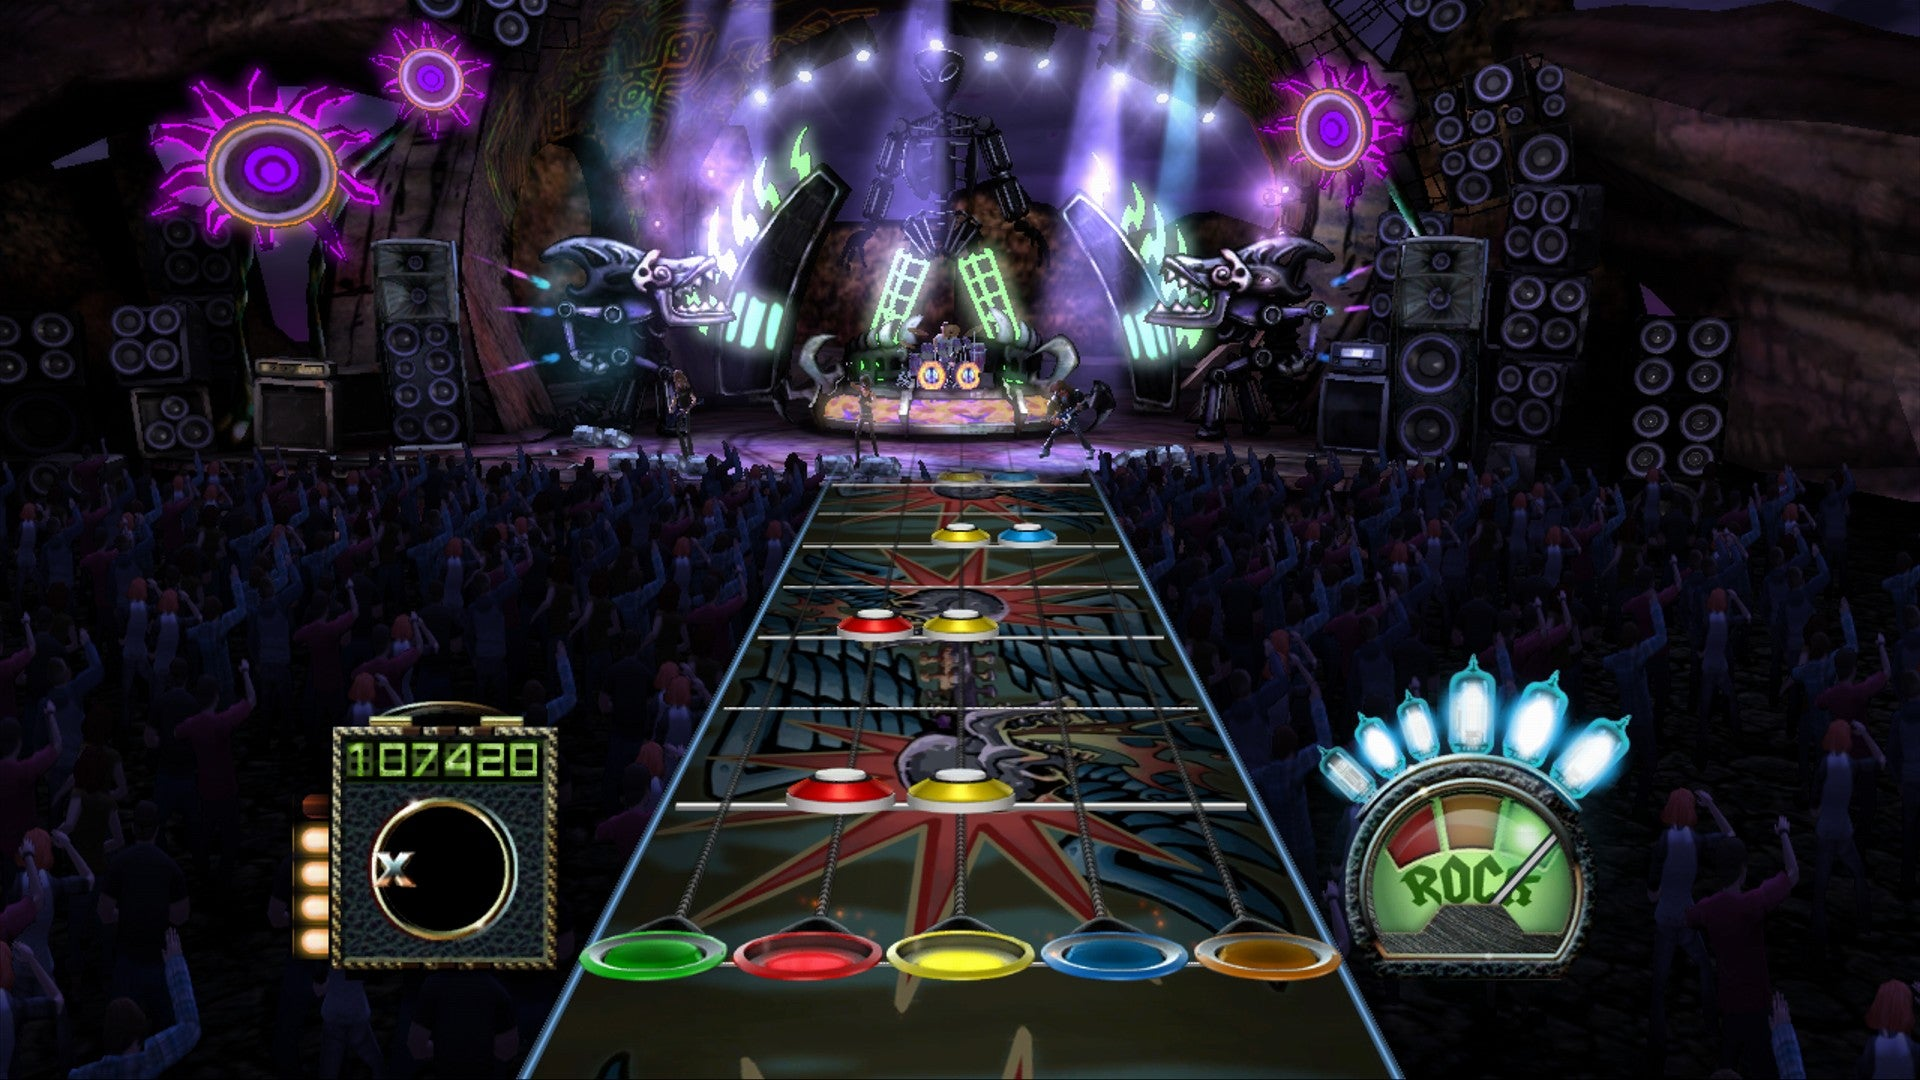 A Clever Mario Maker Level Inspired By Guitar Hero